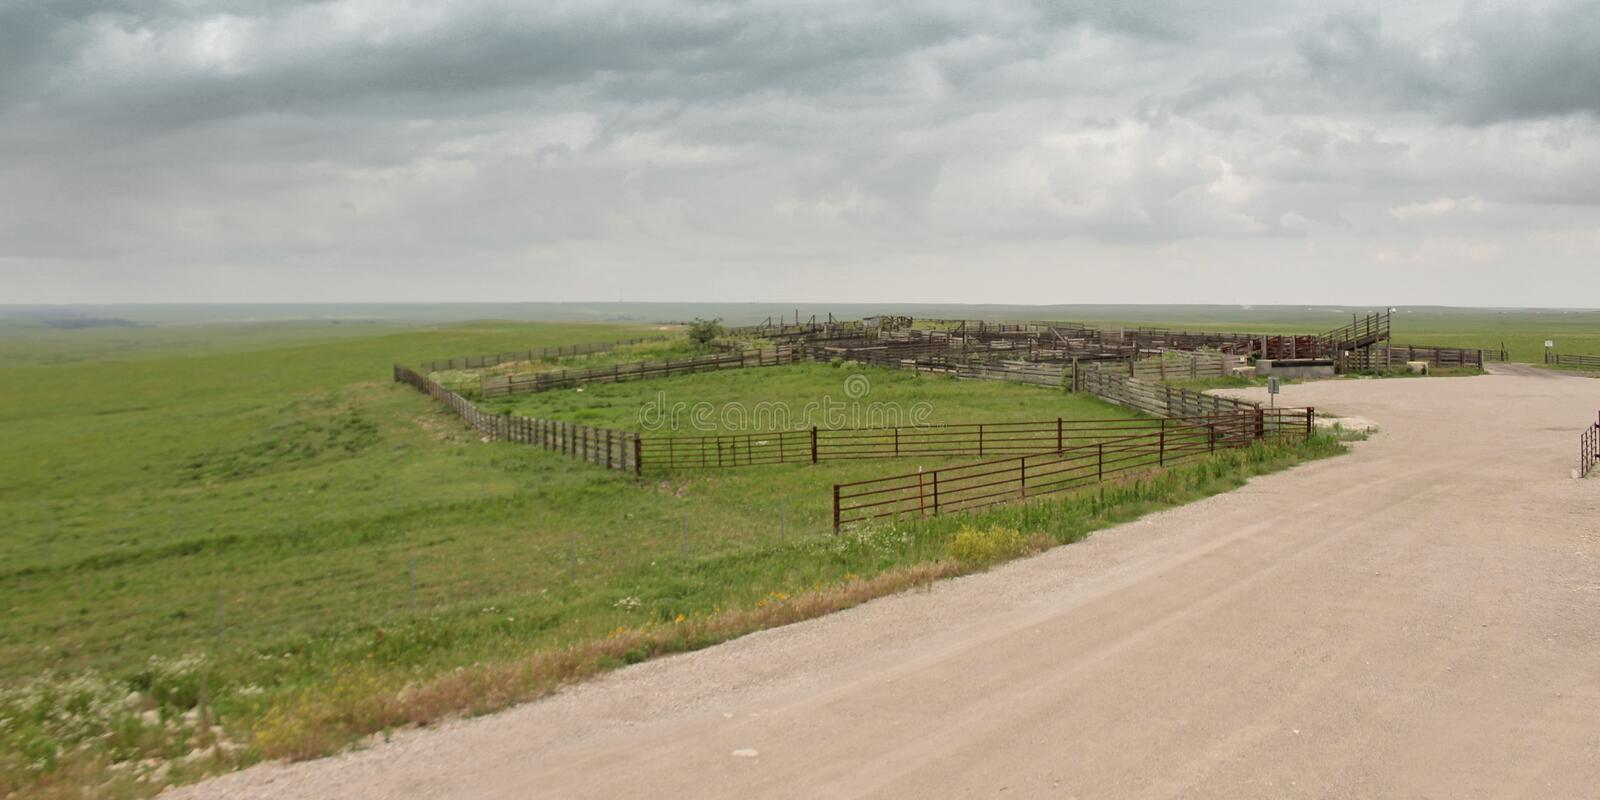 Cattle pens on stormy day. Cattle pens stormy day herd herding working cow cows farming agriculture scenic prarie cloudy overcast country vista horizion open stock image